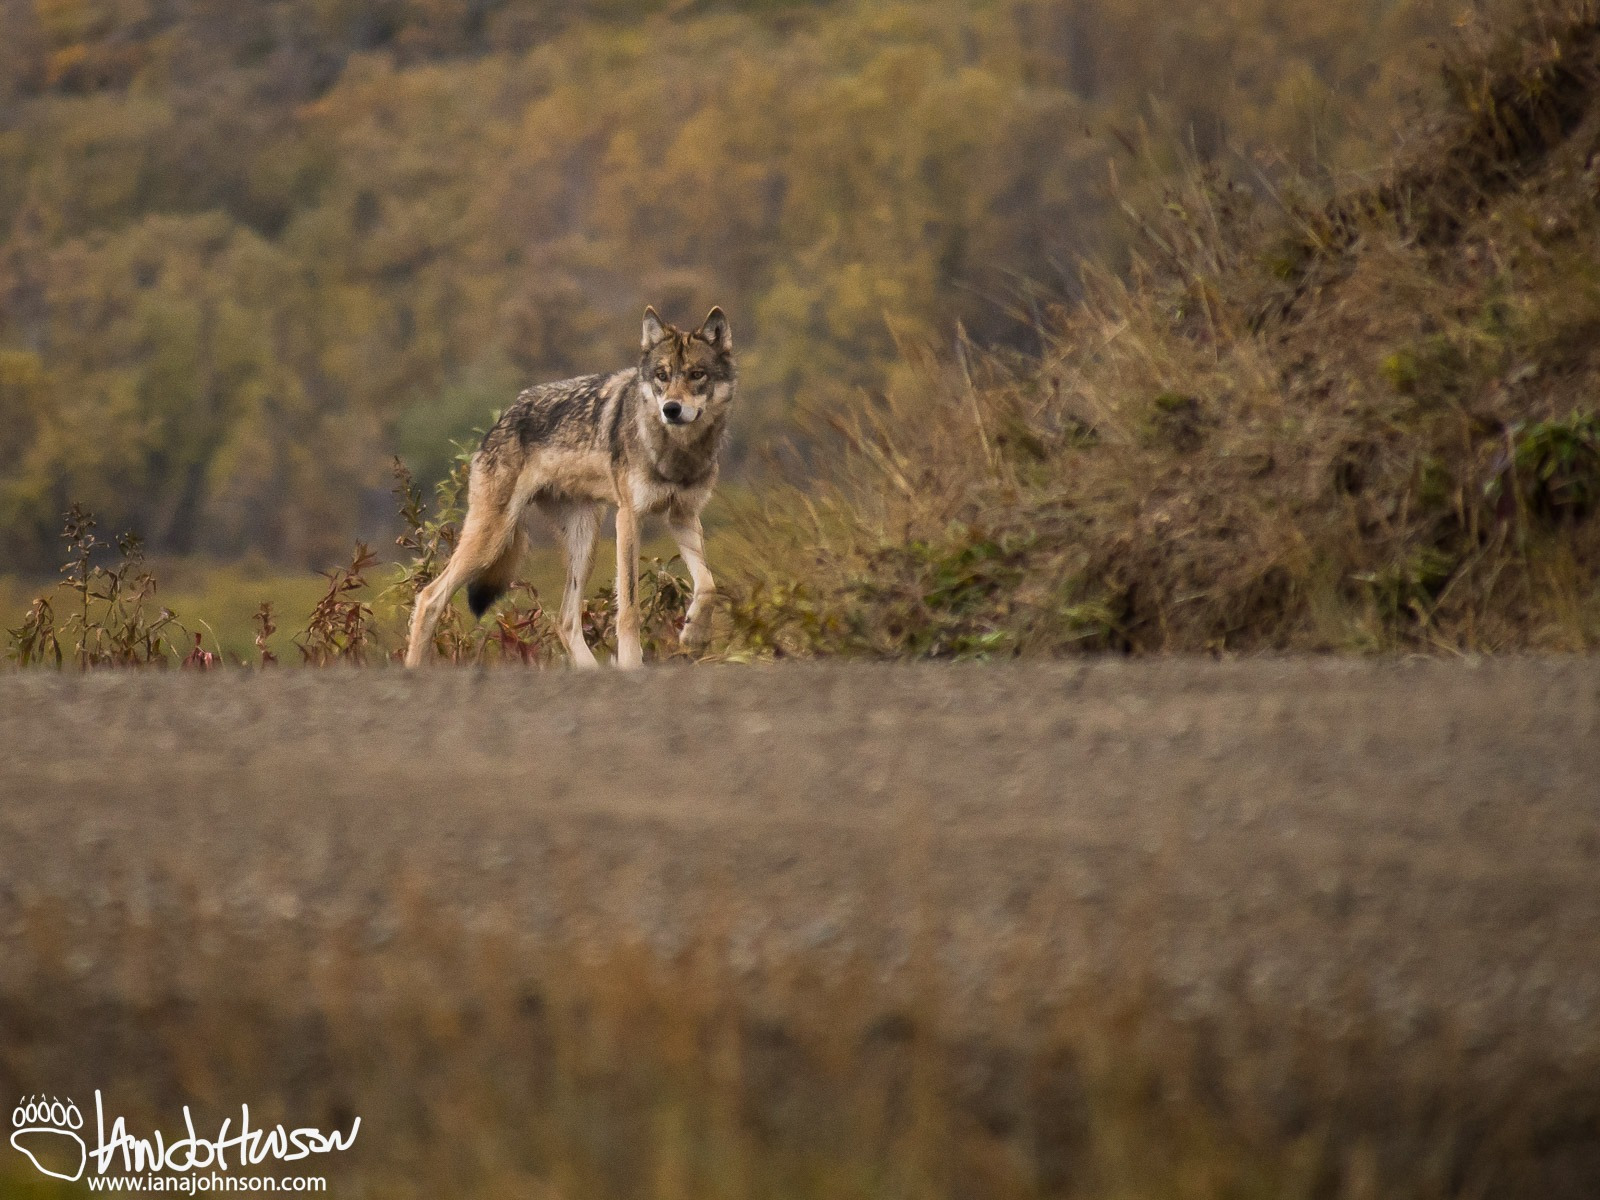 THE PHOTOGRAPHER WAS BIKING IN DENALI NATIONAL PARK, ALASKA WHEN HE CAUGHT THIS GREY WOLF WATCHING. MAN AND WOLF PARTED WITHOUT INCIDENT. IMAGE: THANKS TO IAN A. JOHNSON, LIFE, WILDLIFE AND WILD-LIFE.